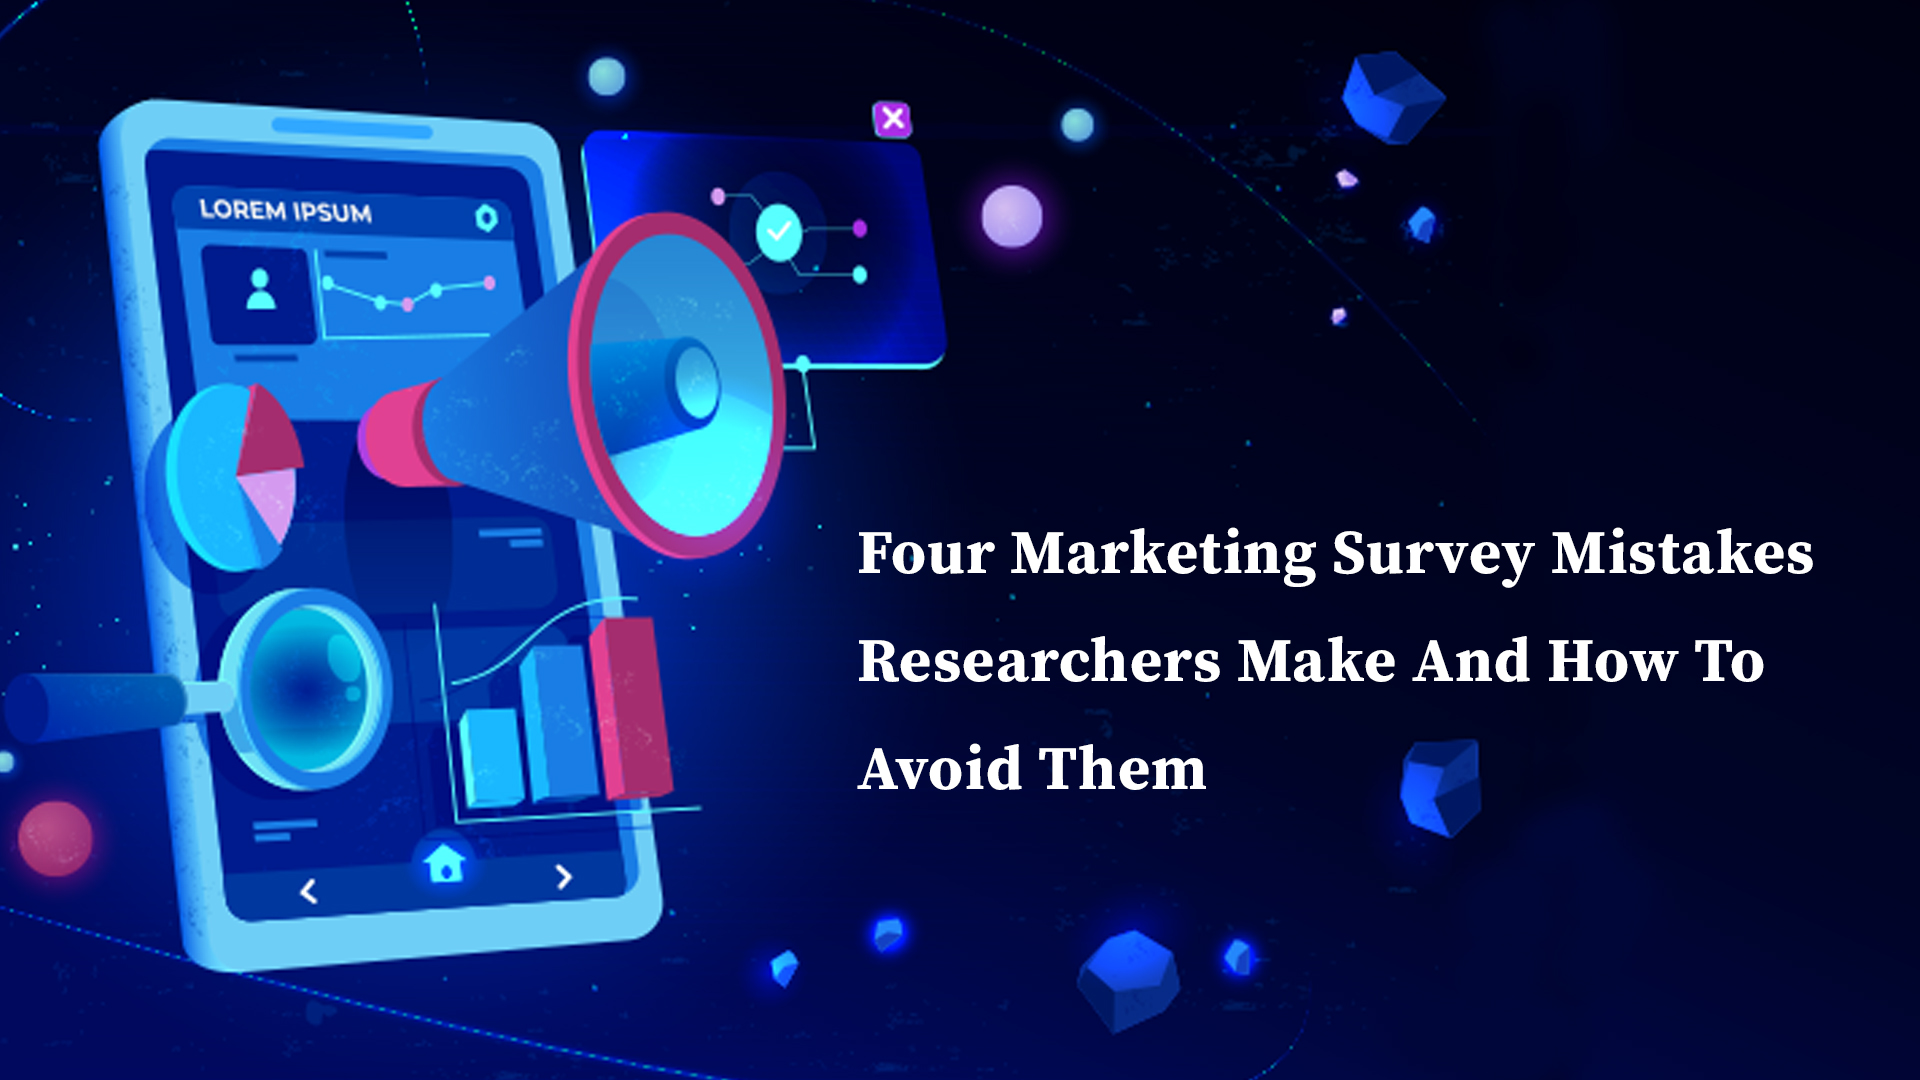 4 Marketing Survey Mistakes Researchers Make And How To Avoid Them